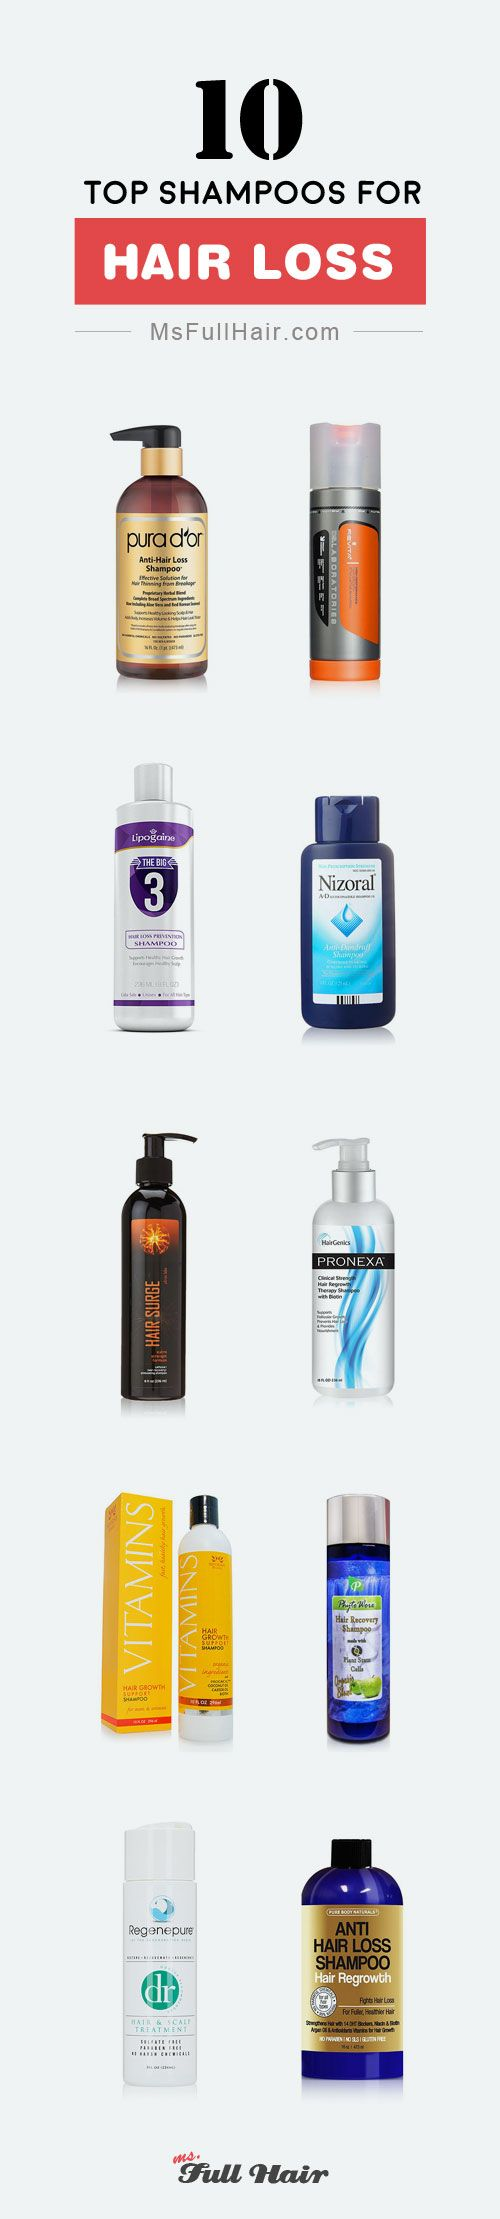 10 Best Hair Loss Shampoos for Thinning Hair 2017